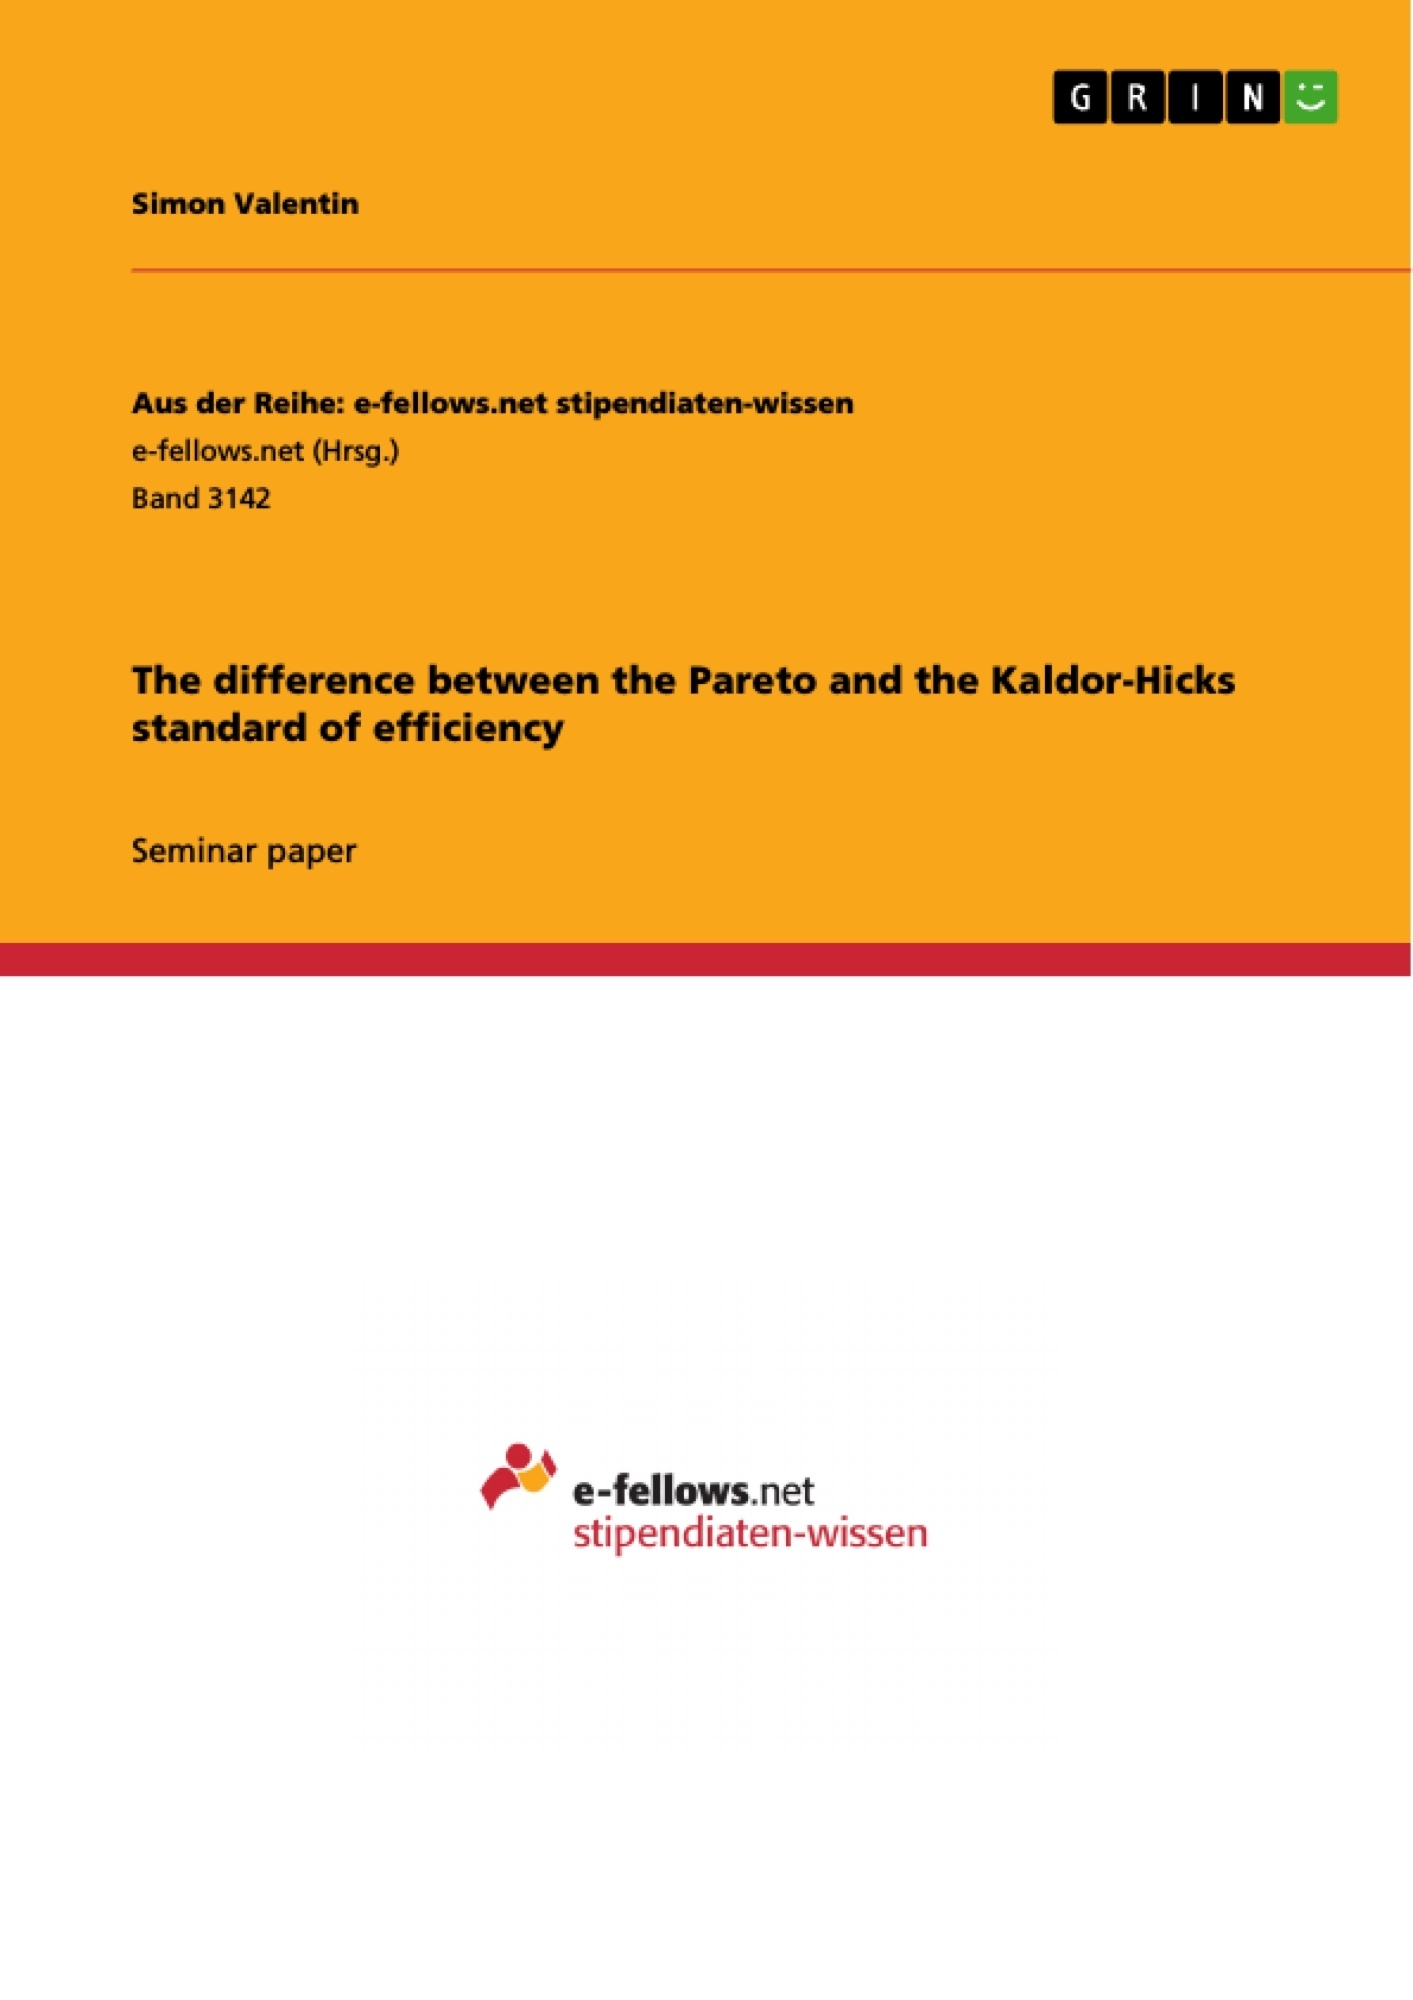 Title: The difference between the Pareto and the Kaldor-Hicks standard of efficiency